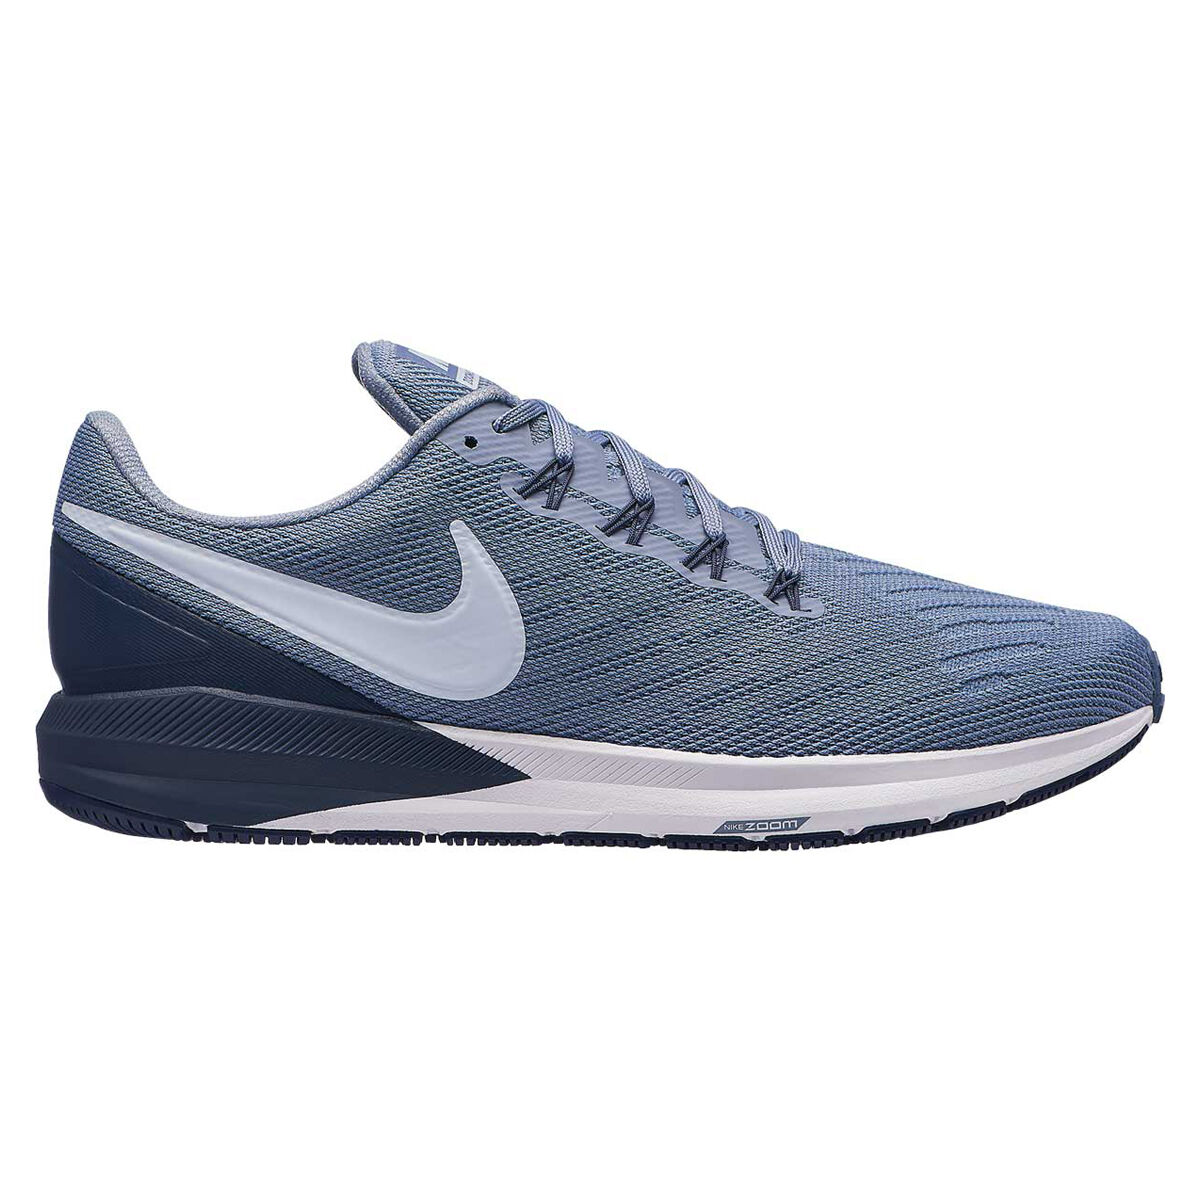 Nike Air Zoom Structure 22 Mens Running Shoes